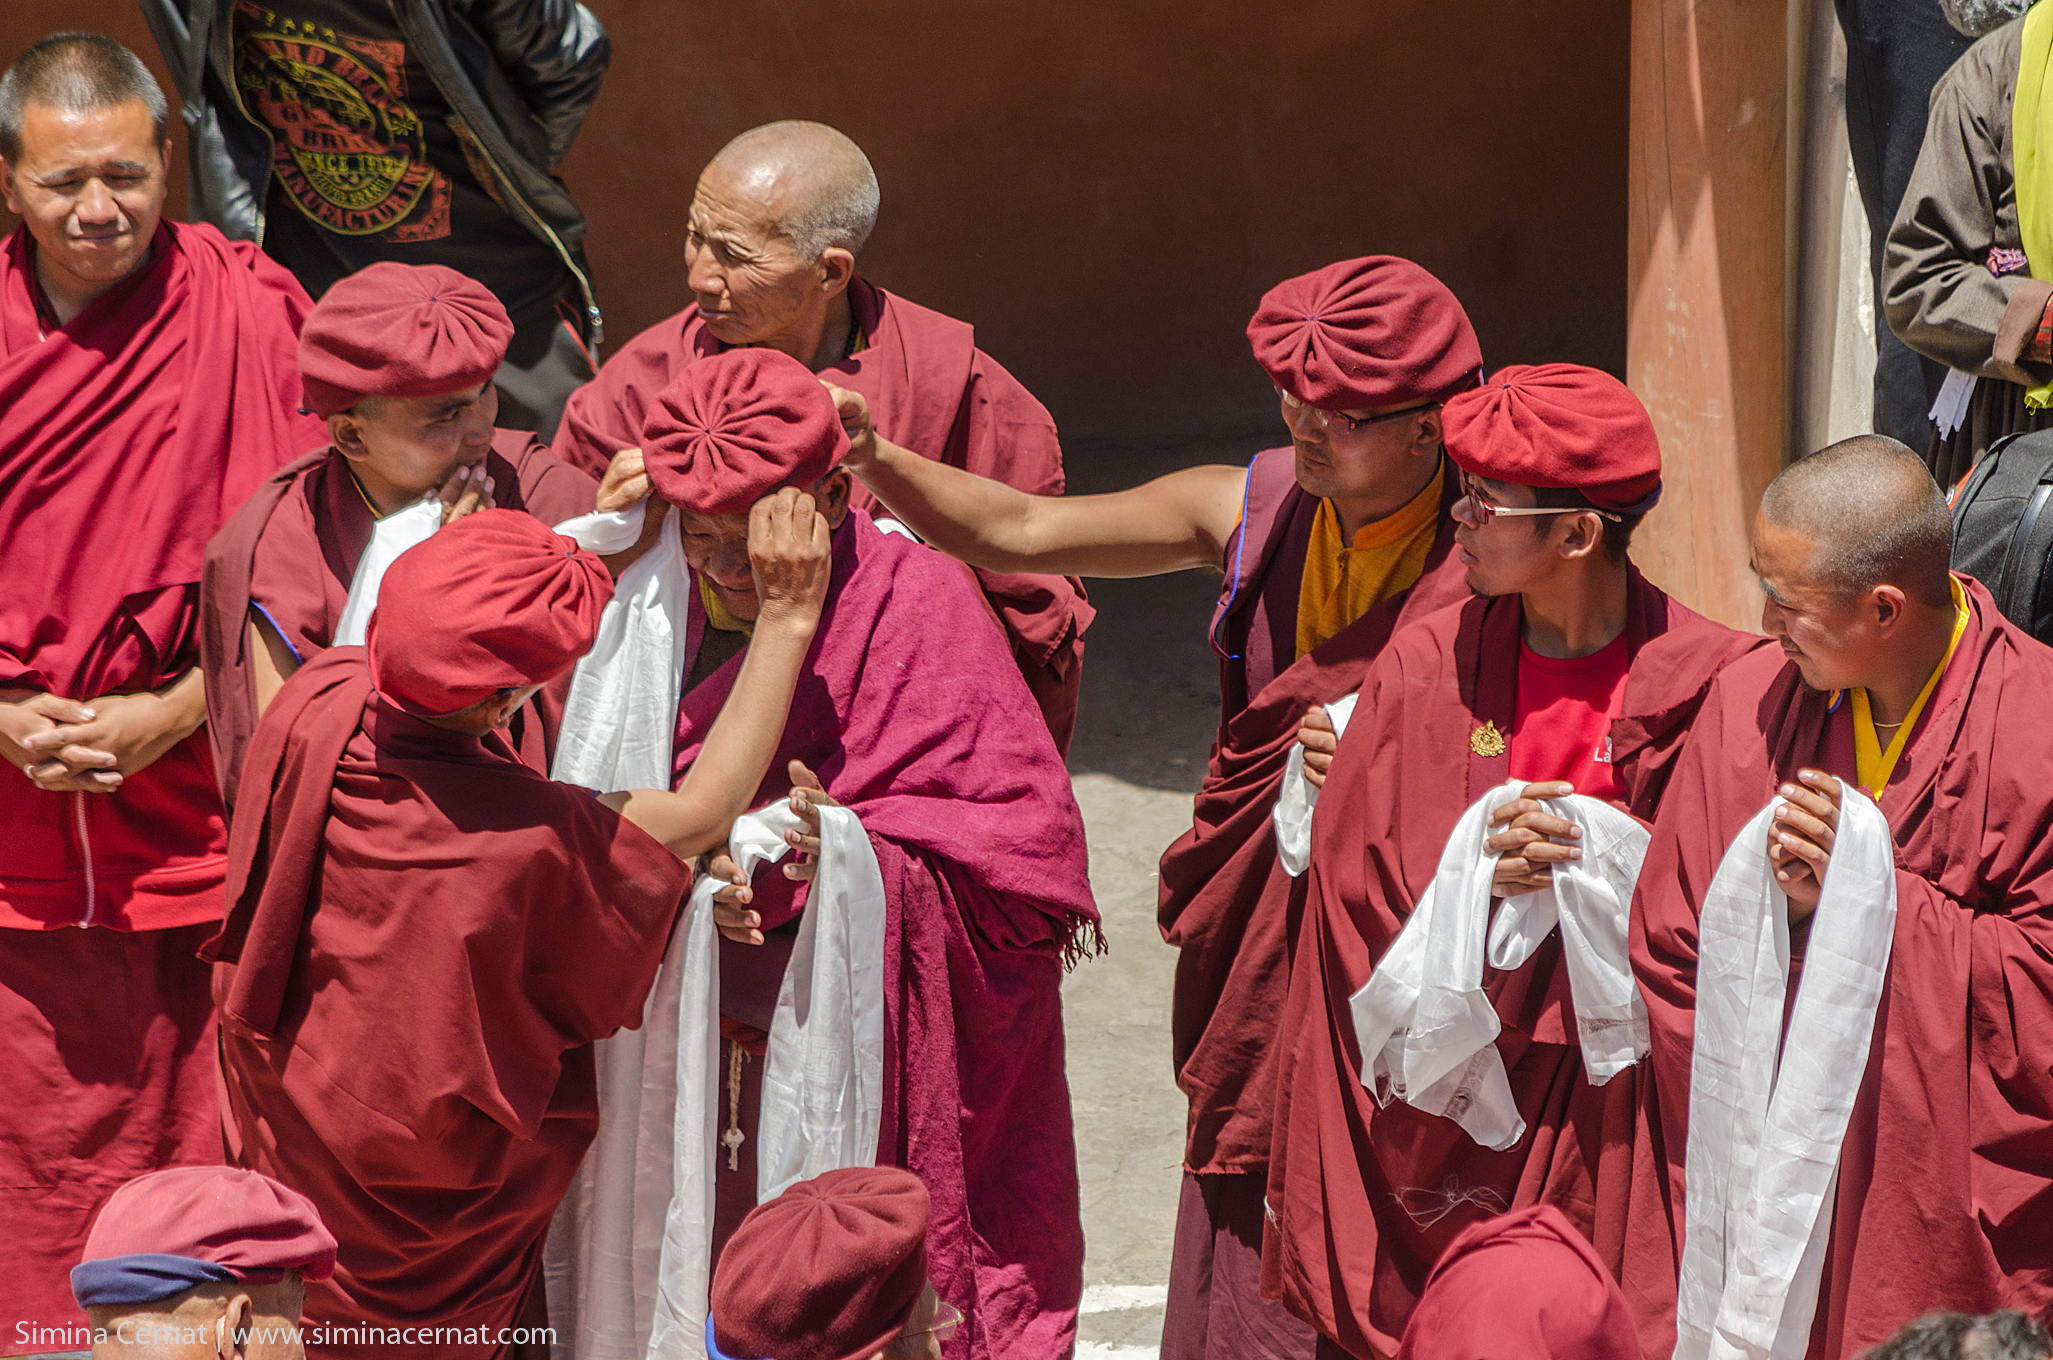 monks at hemis Monastery